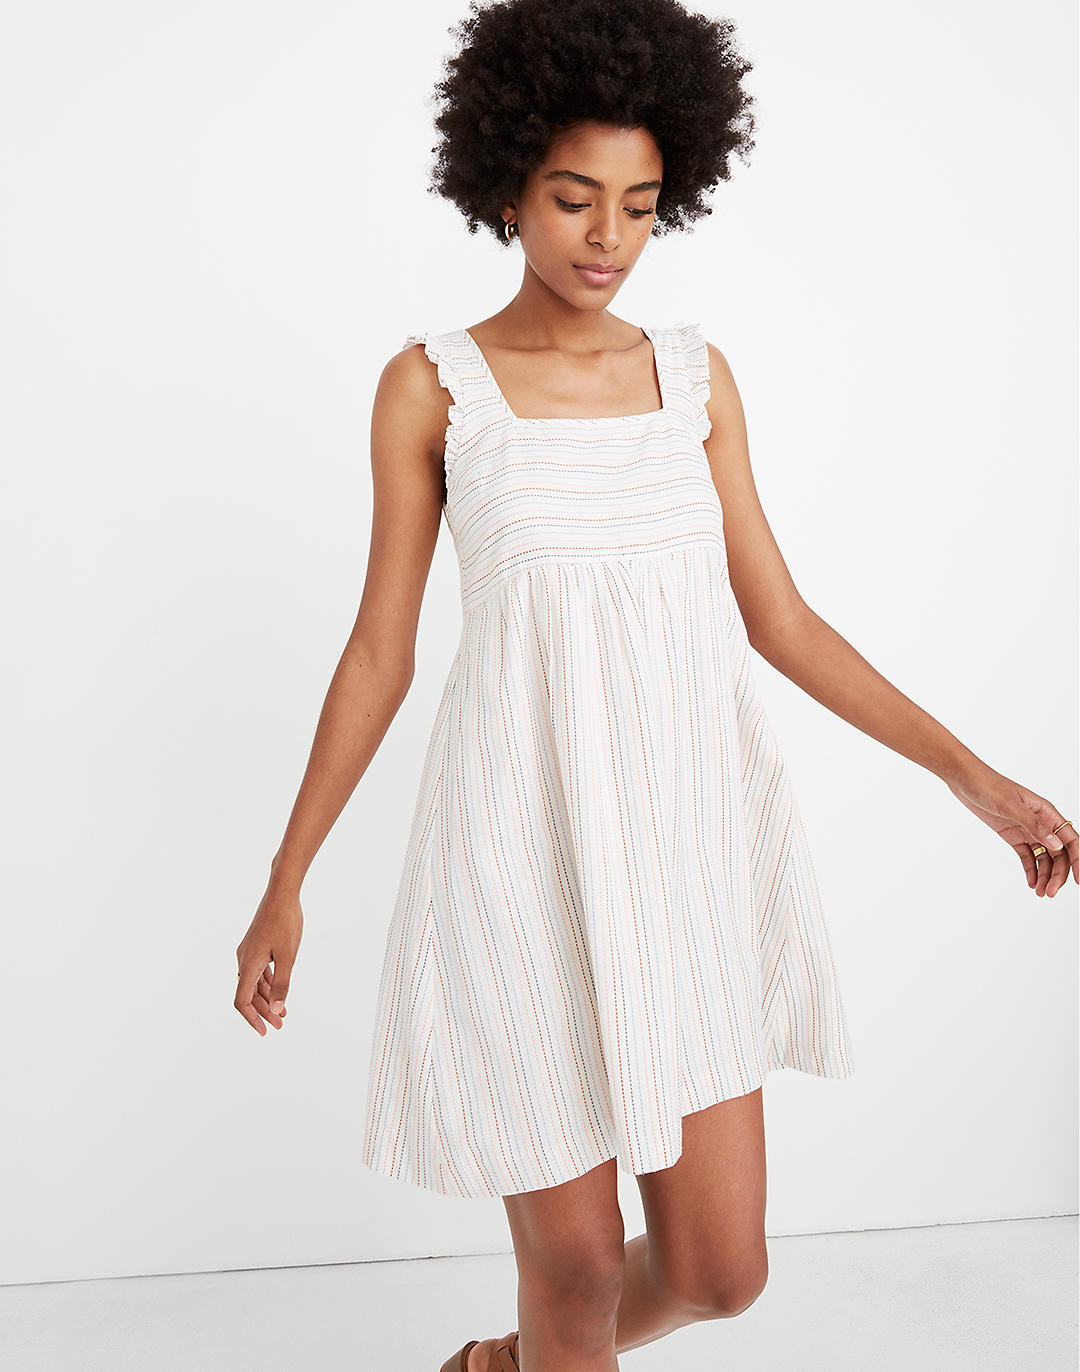 Ruffled Square-Neck Dress in Stitched Rainbow Stripe